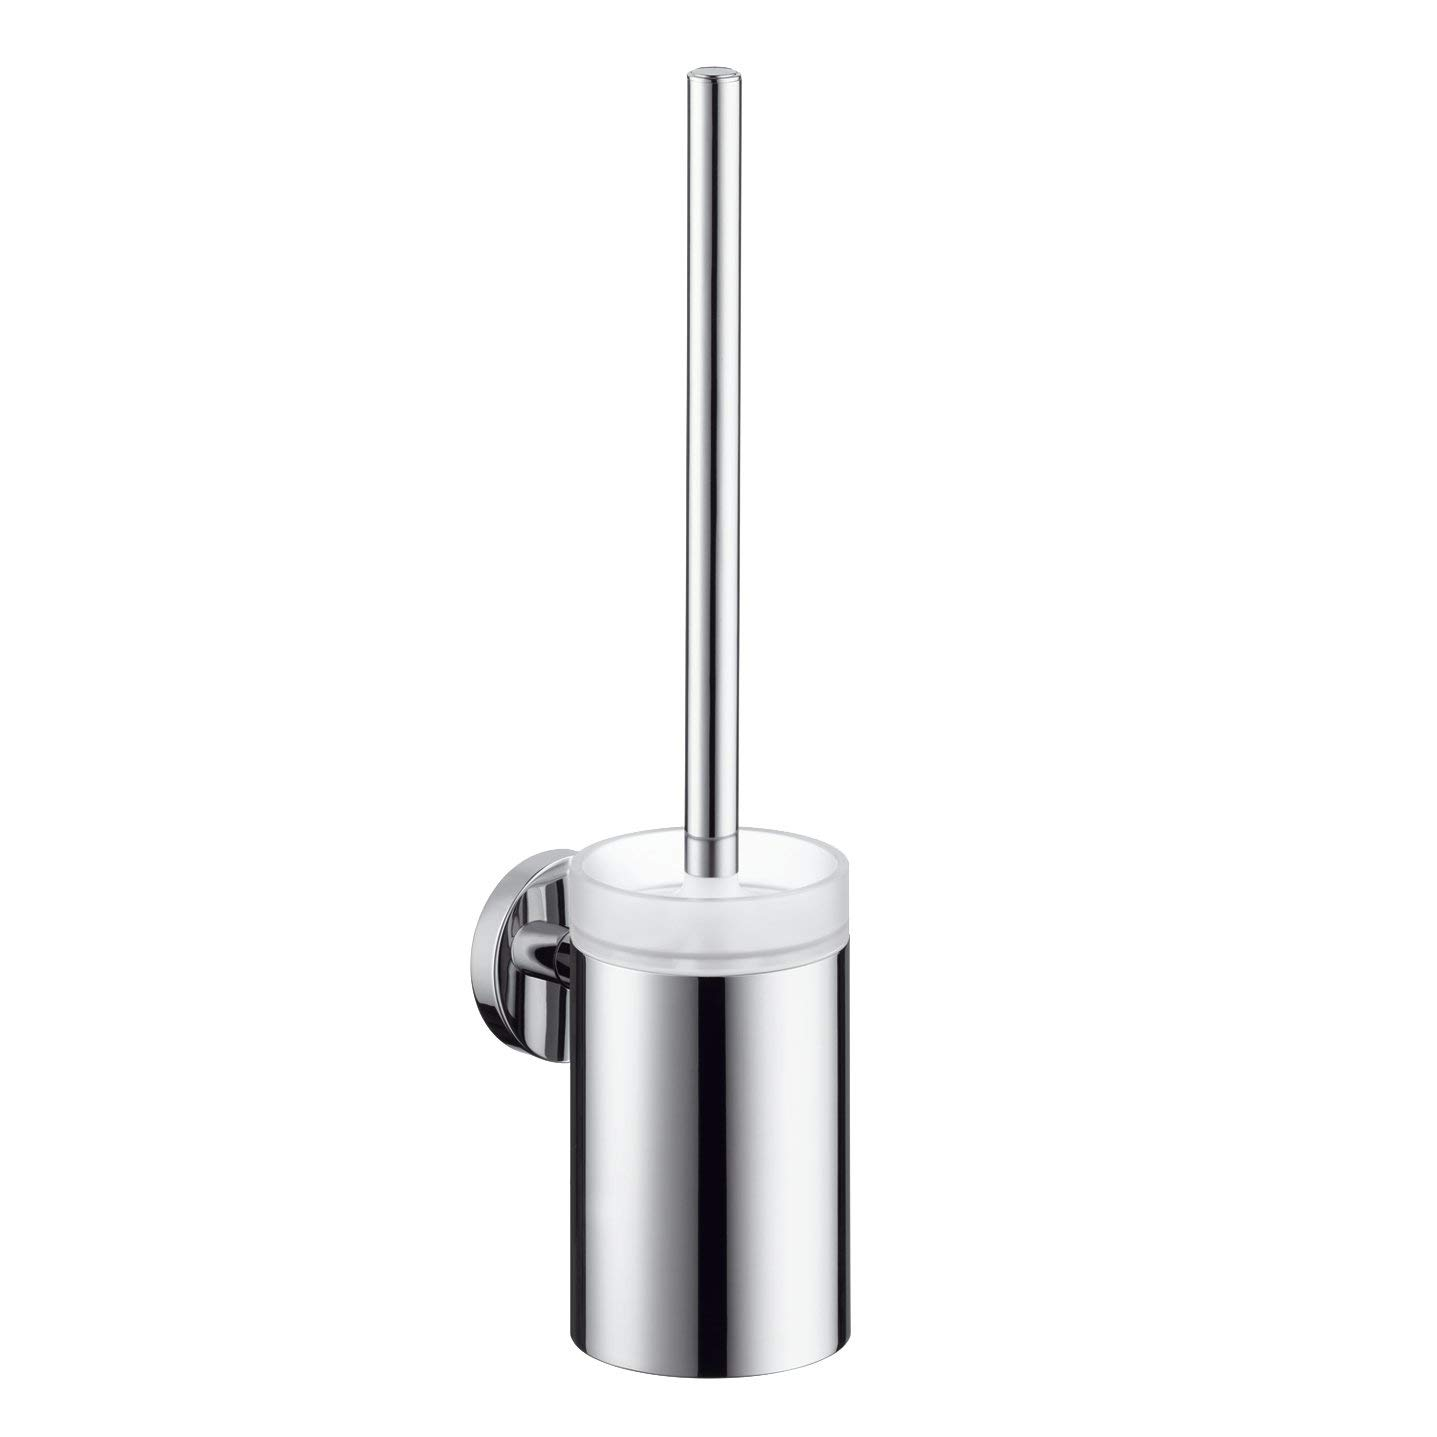 Hansgrohe 40522820 S and E Toilet Brush with Holder, Brushed Nickel HG40522820